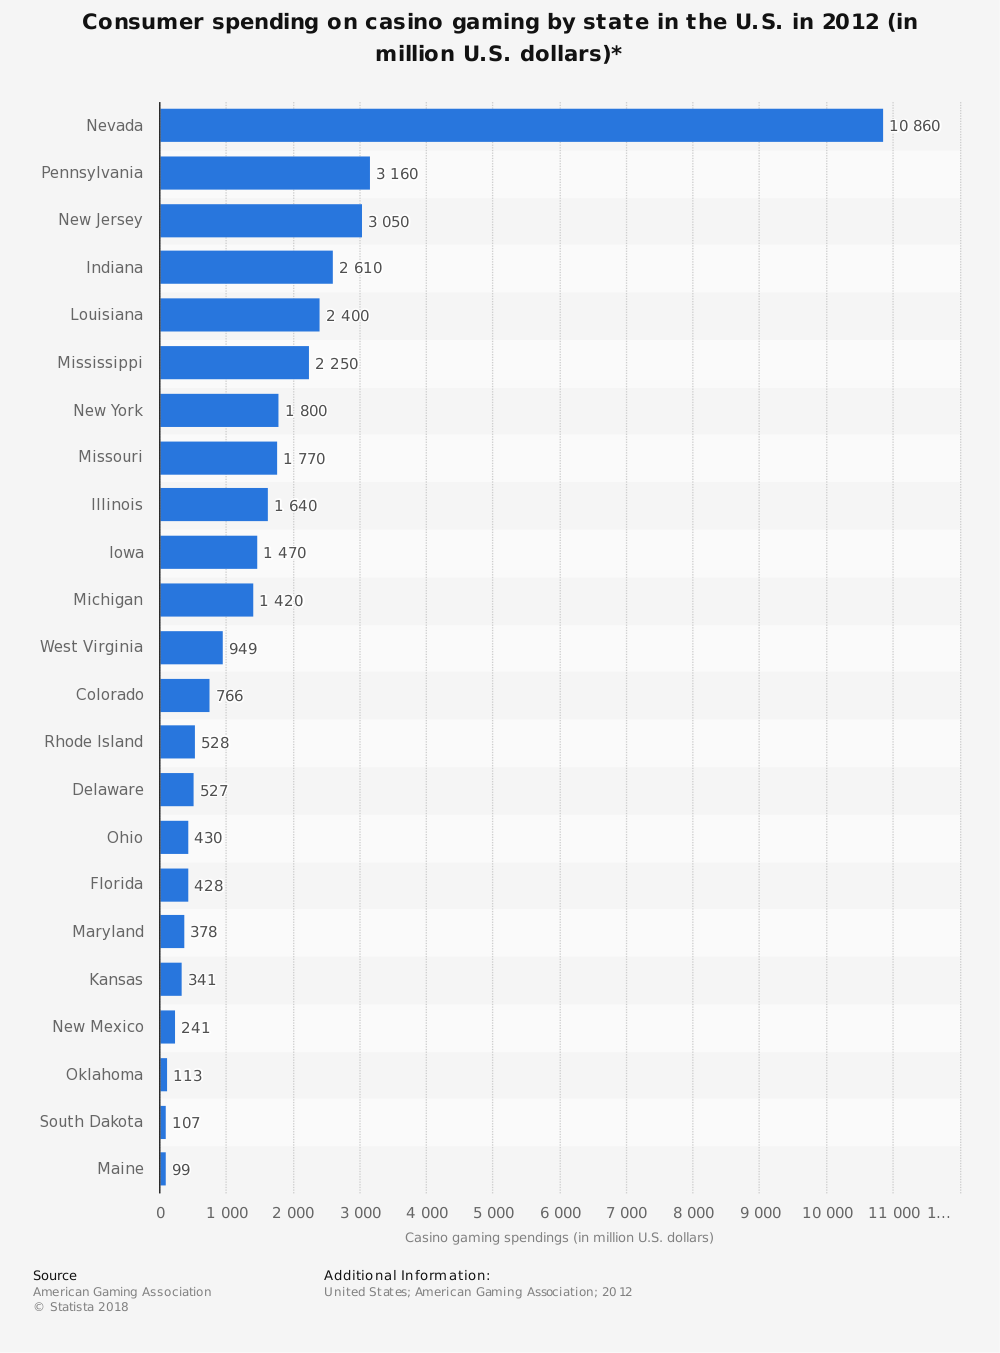 Statistic: Consumer spending on casino gaming by state in the U.S. in 2012 (in million U.S. dollars)* | Statista